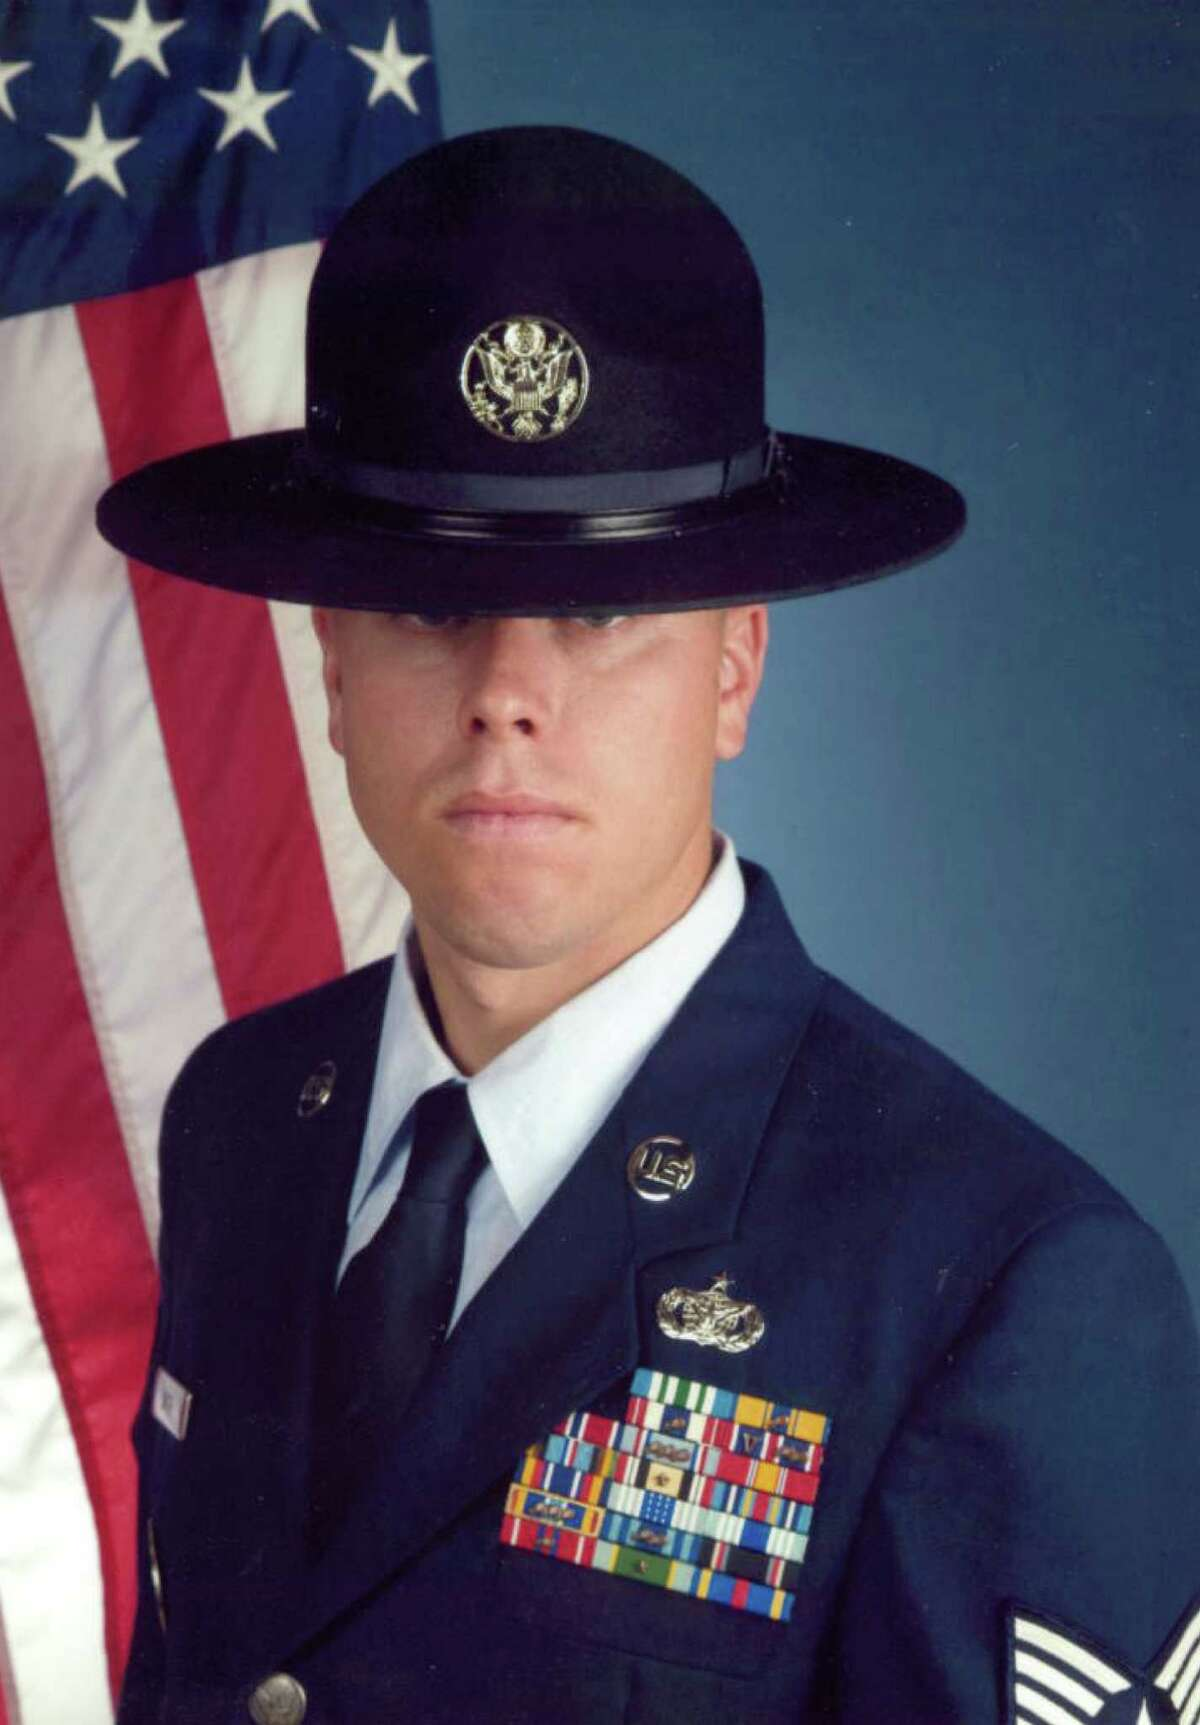 In early August, Tech Sgt Christopher Smith, 33, was convicted on two of four counts of misconduct with basic trainees and sentenced to 30 days in jail.